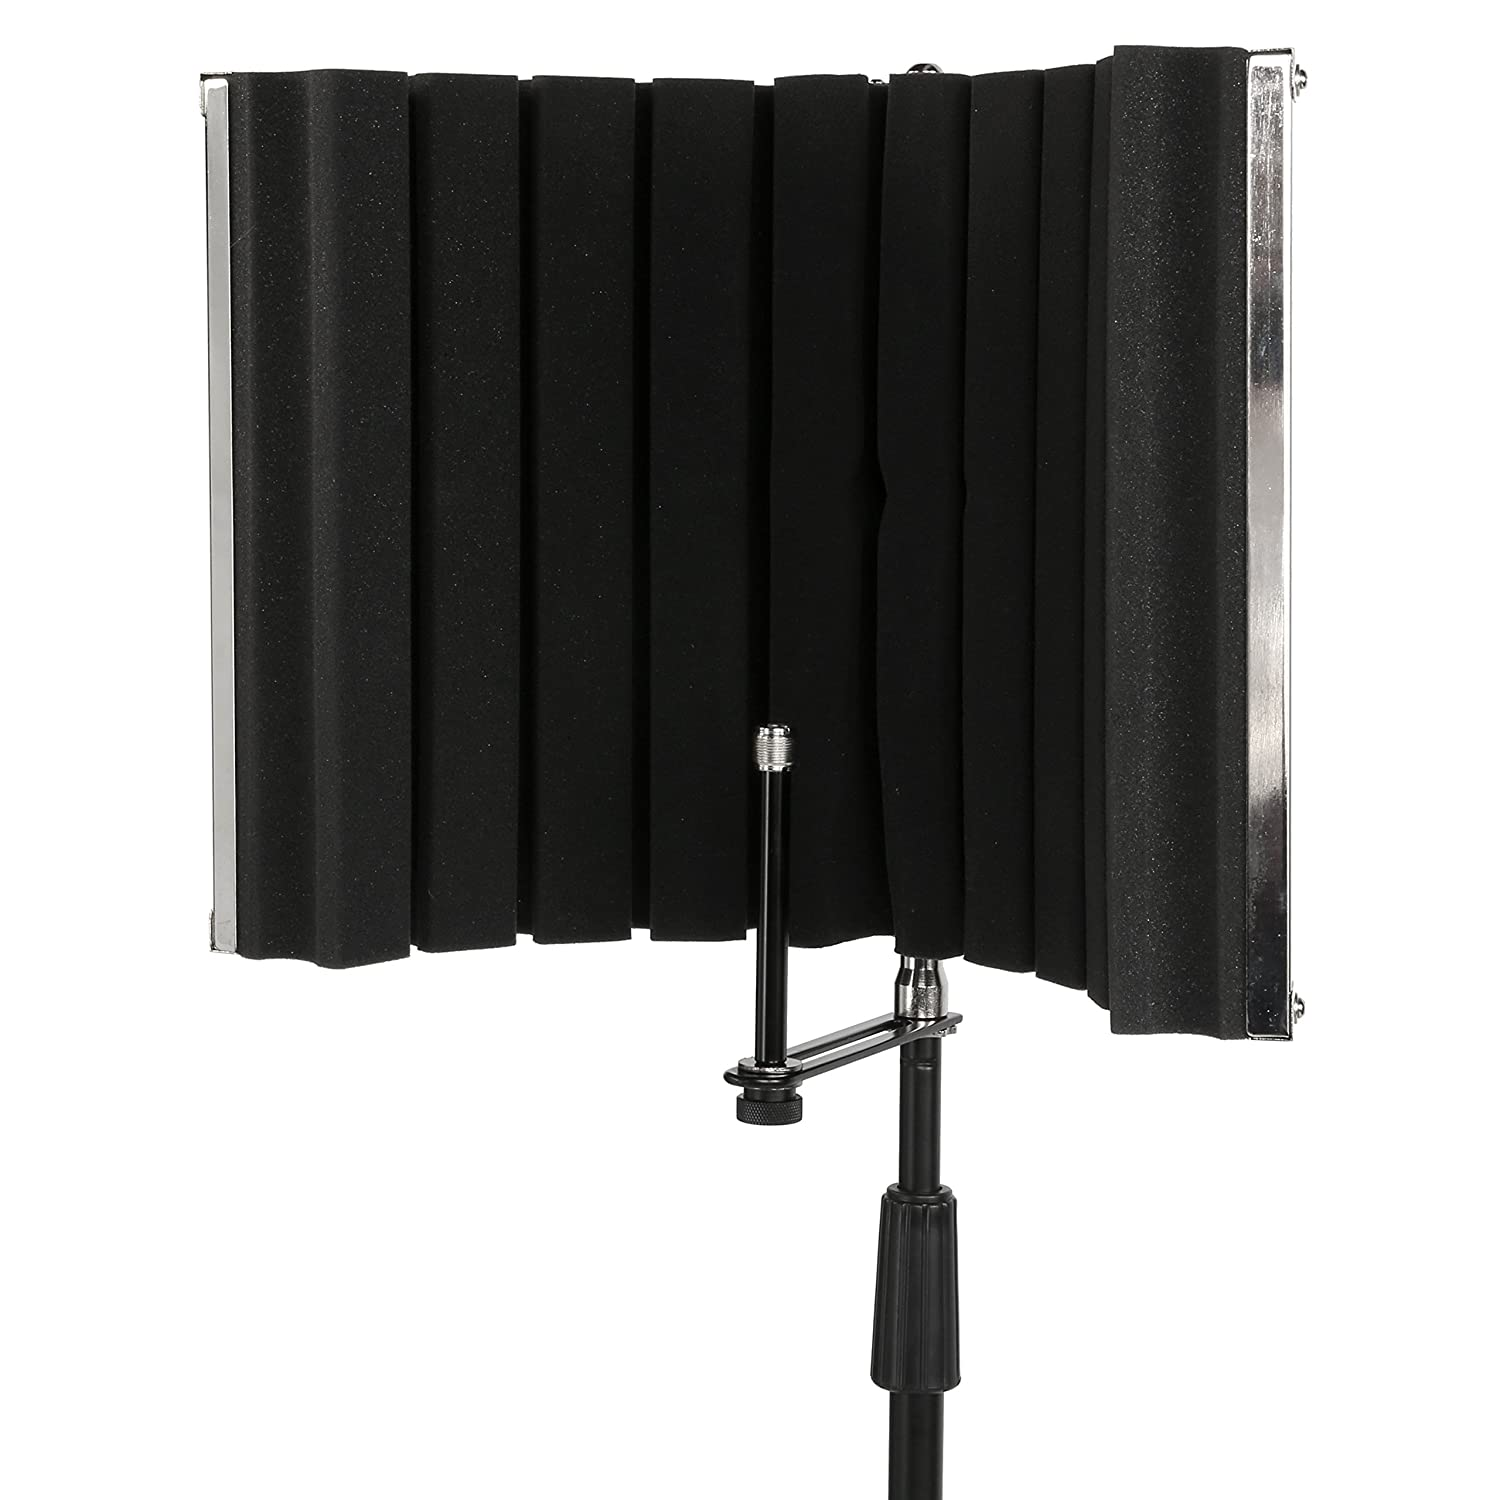 LyxPro VRI-30 Sound Absorbing and Vocal Recording Microphone Isolation Shield Panel For Home Office and Studio Portable & Foldable Stand Mount Adjustable